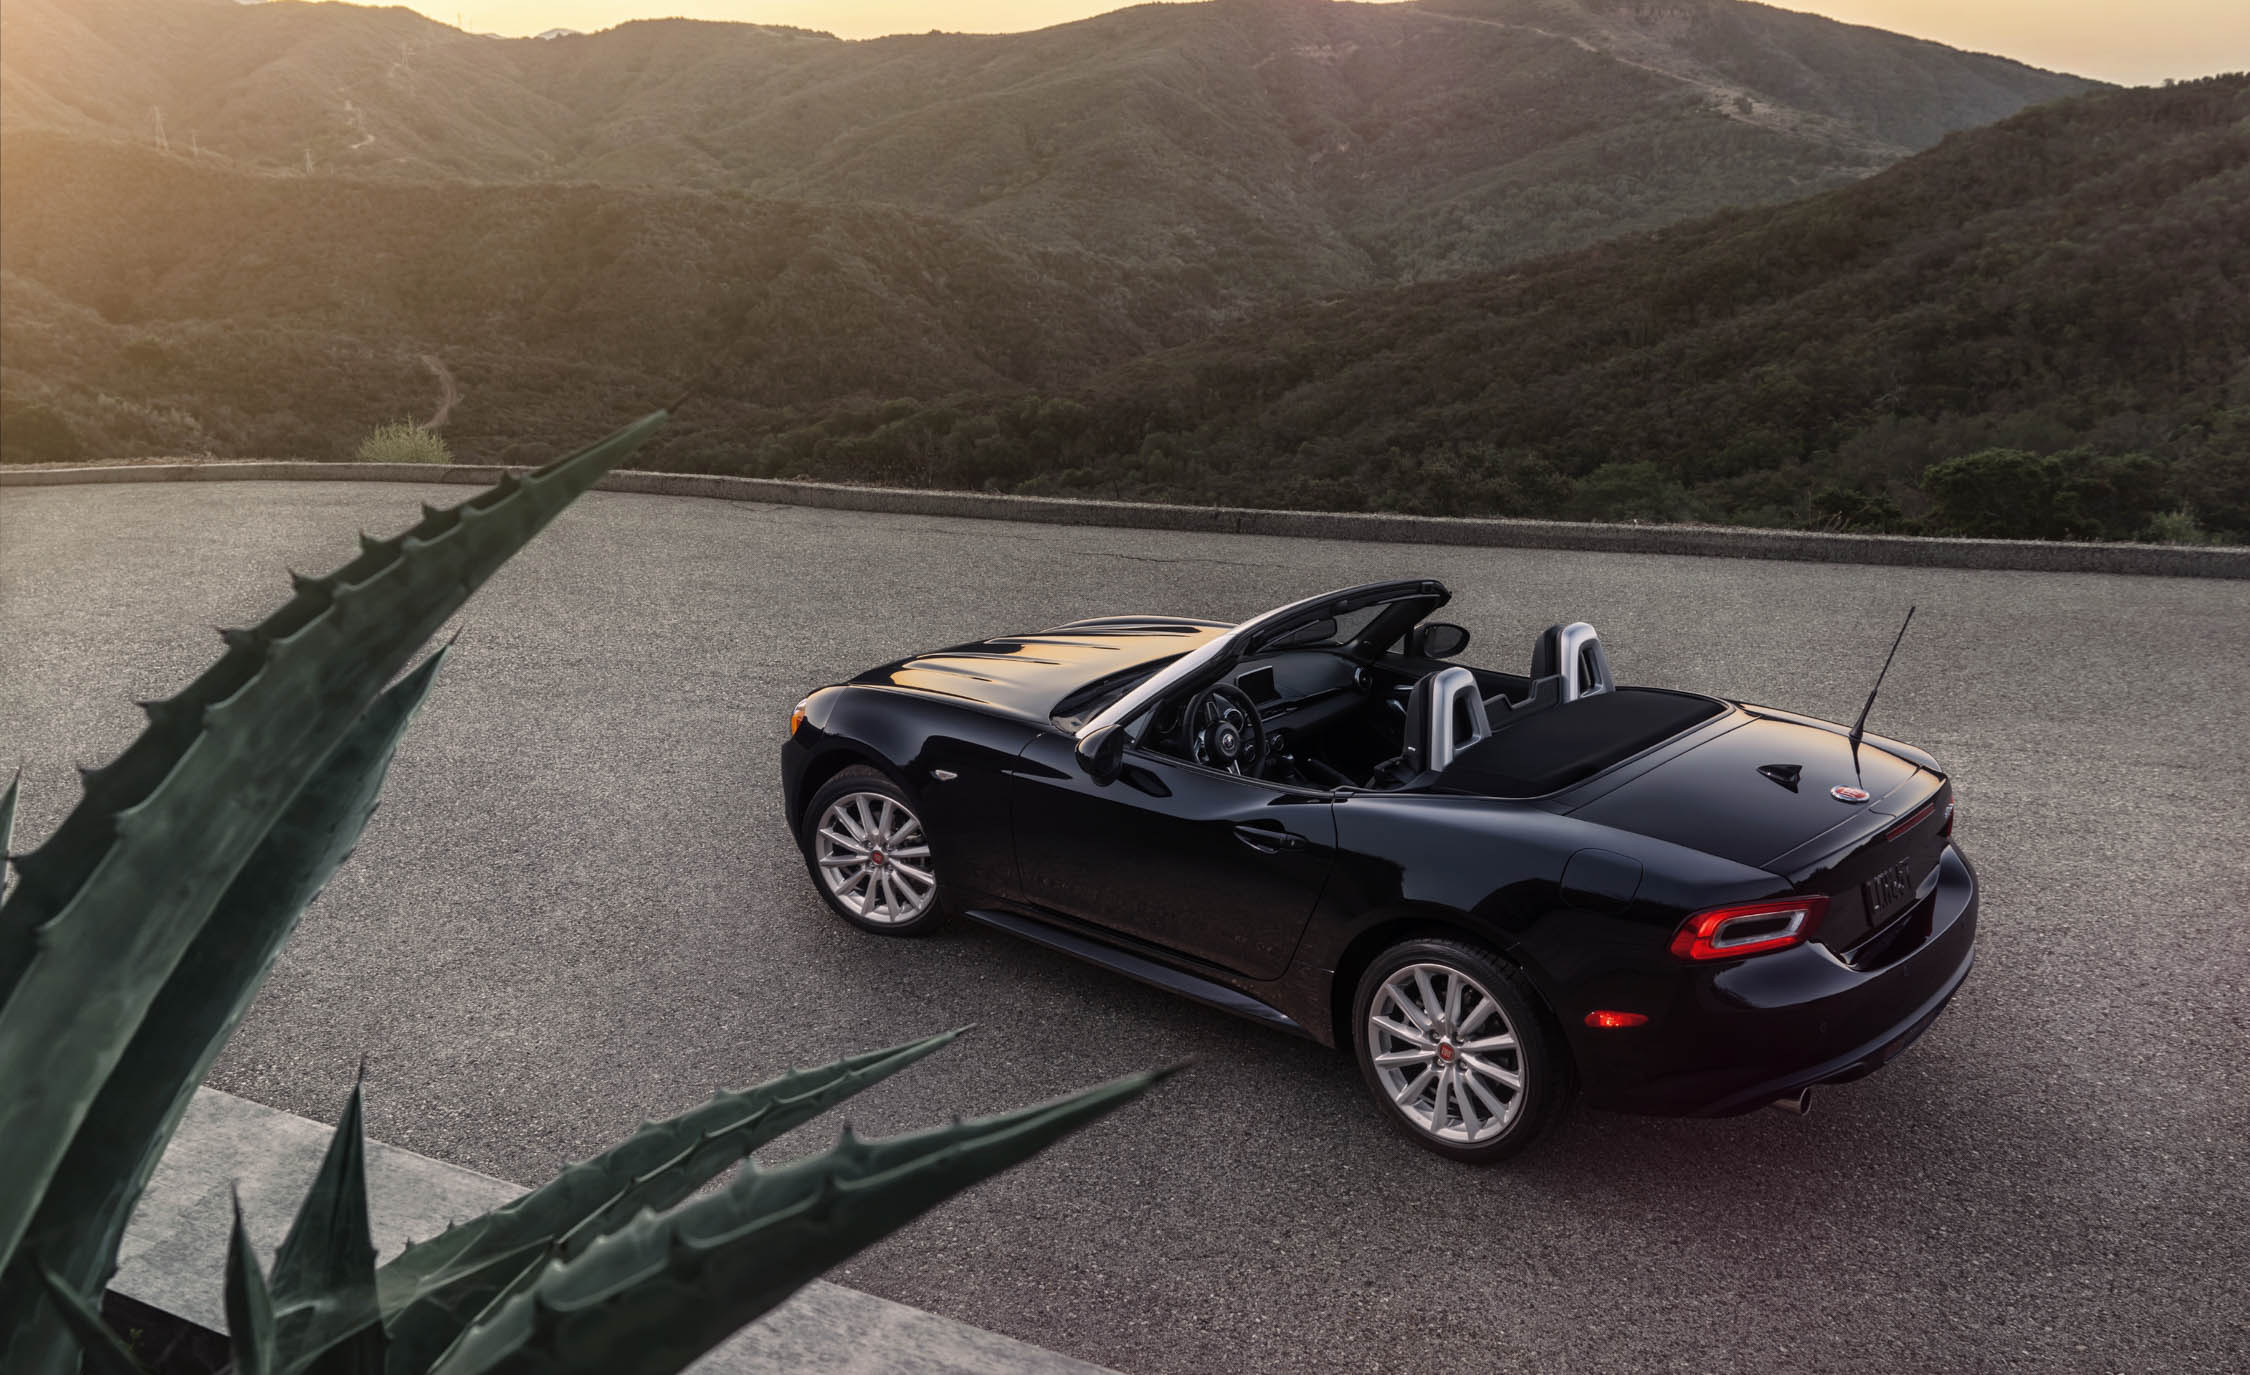 2017 Fiat 124 Spider Convertible Interior Preview (Photo 6 of 23)